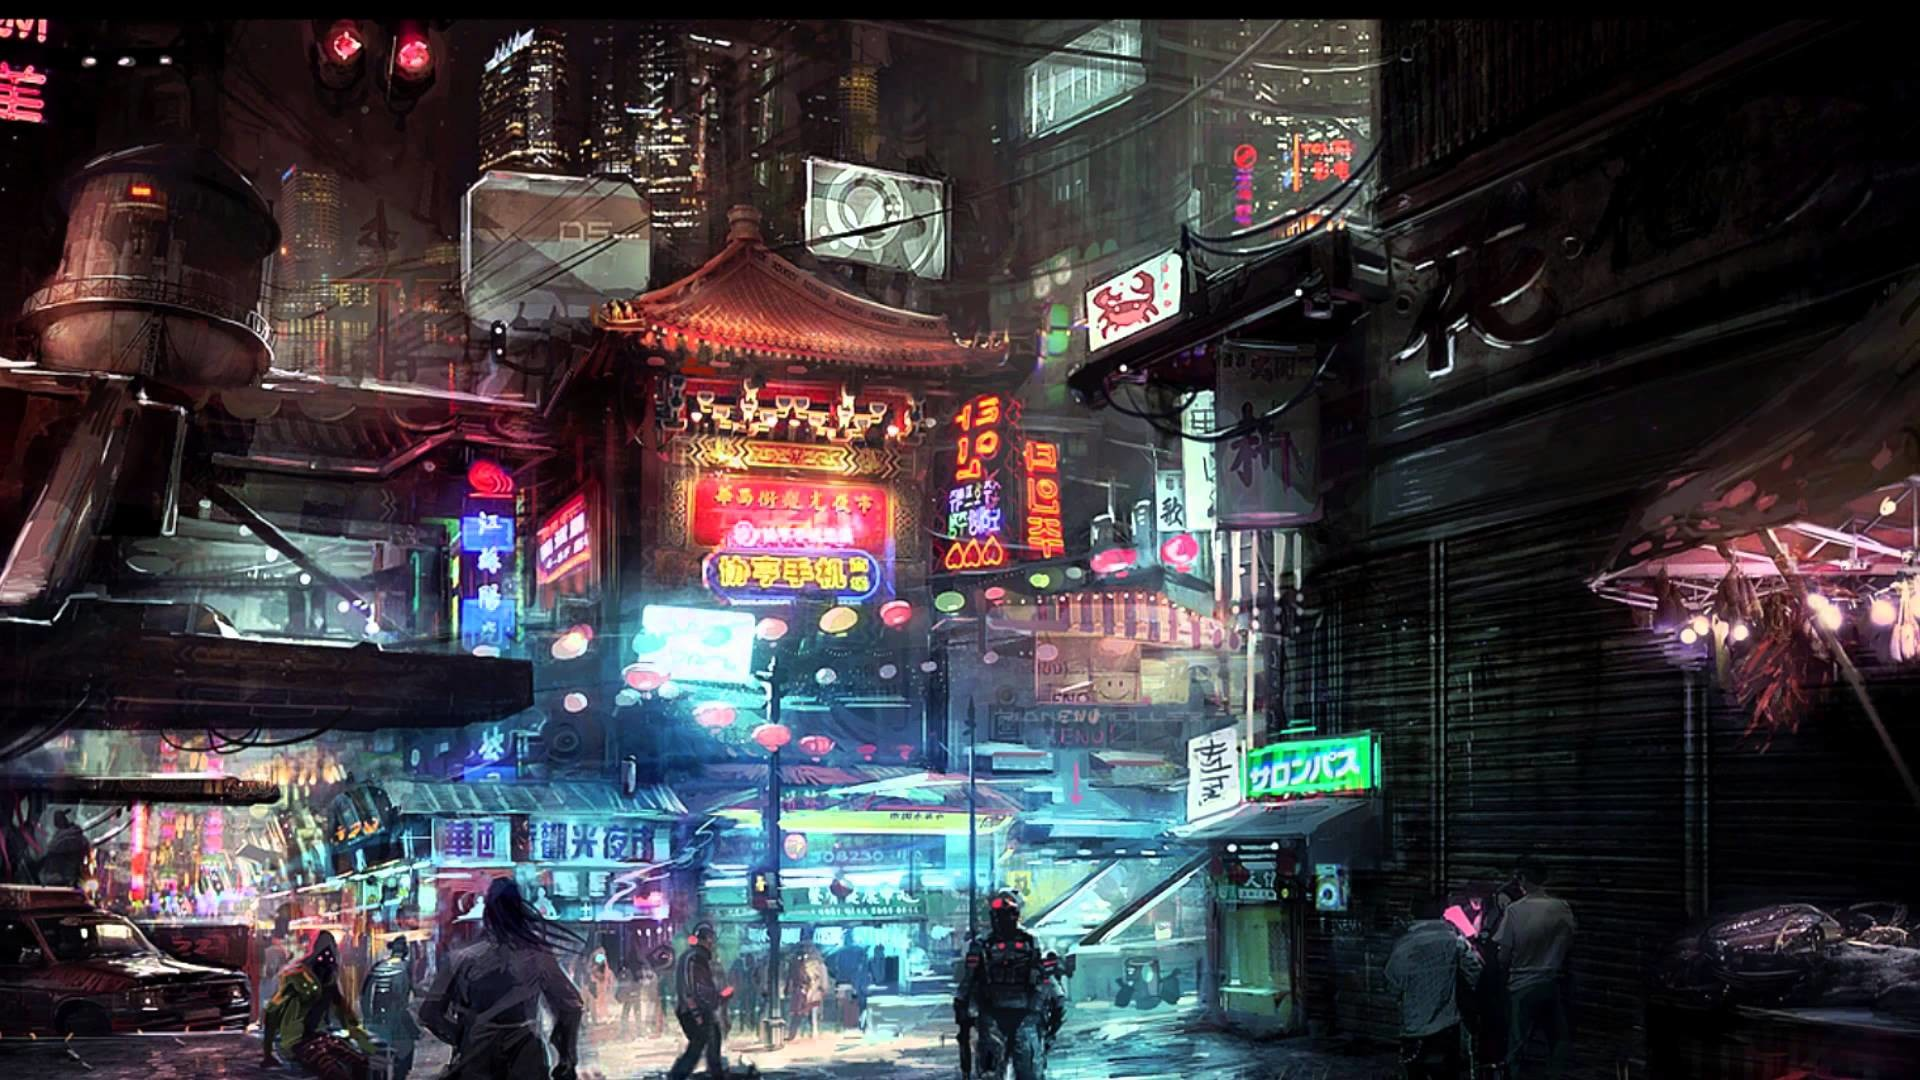 Cyberpunk 2077 wallpaper 83 images 1440x2560 1440x2560 wallpaper cyberpunk 2077 cyberpunk art voltagebd Choice Image